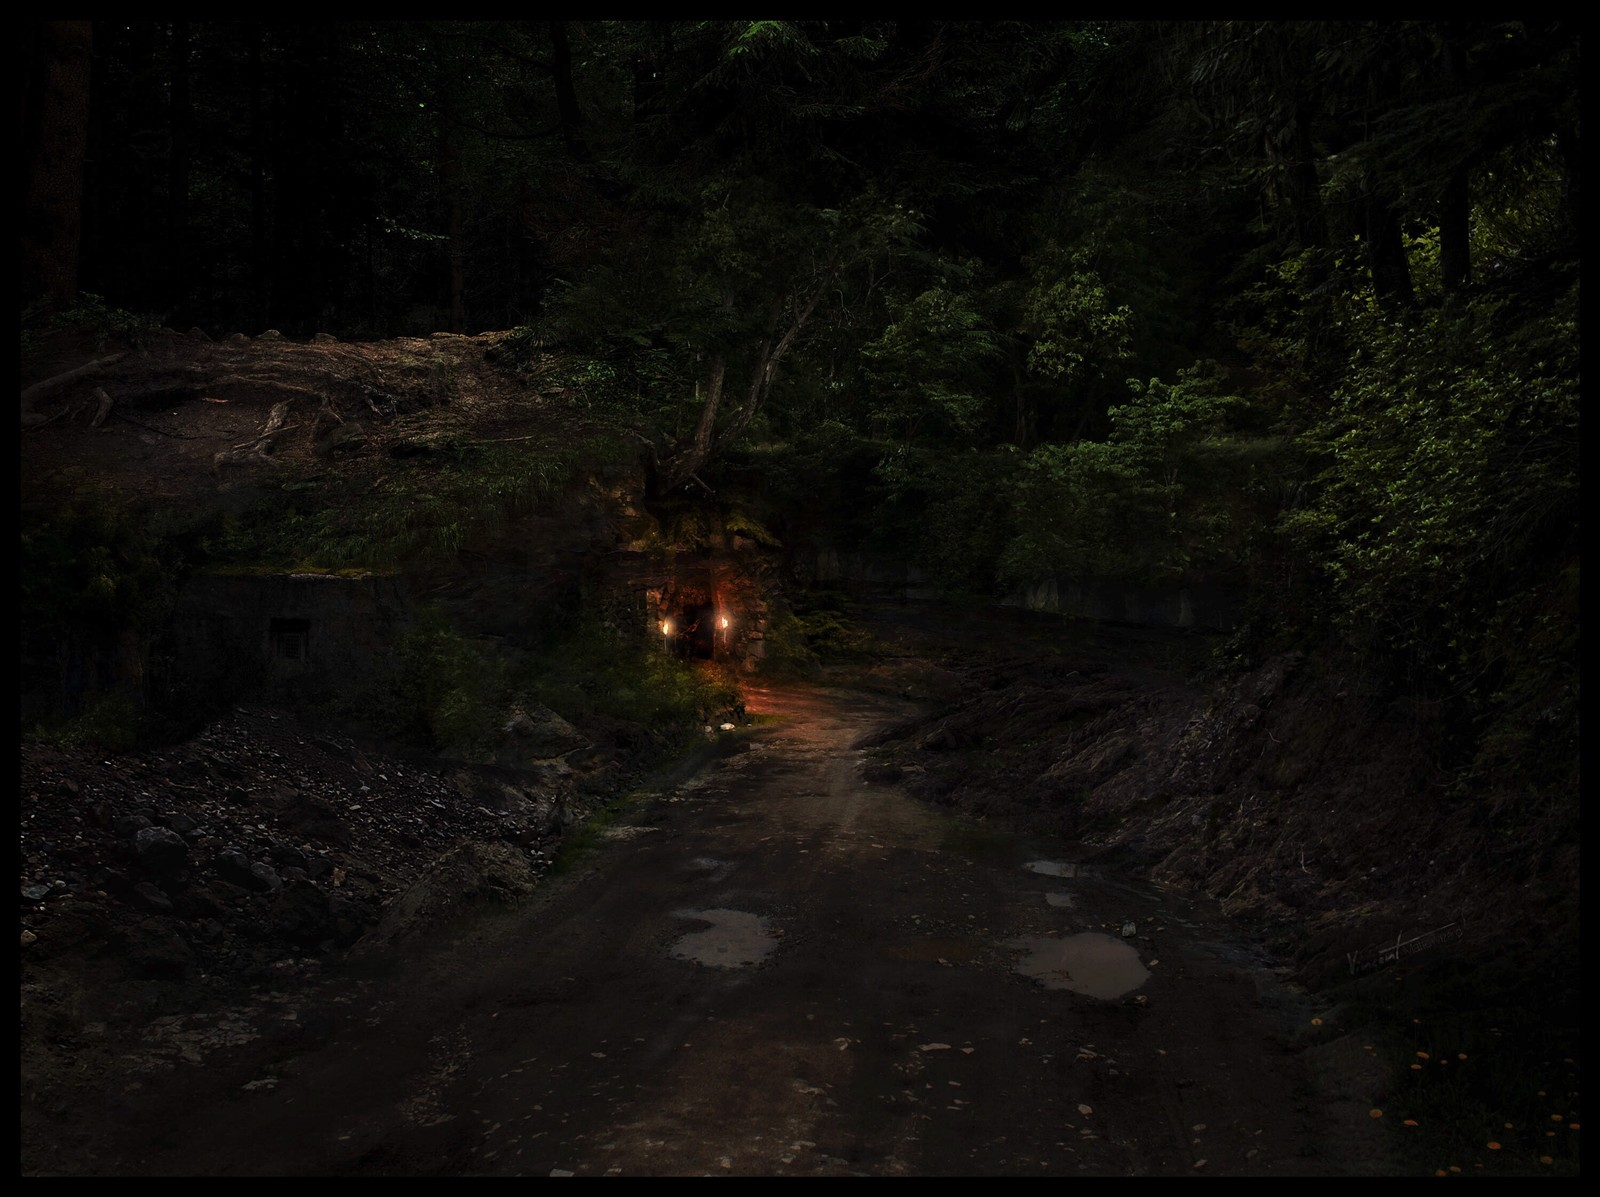 Entrance to the Dark Forest (night version)